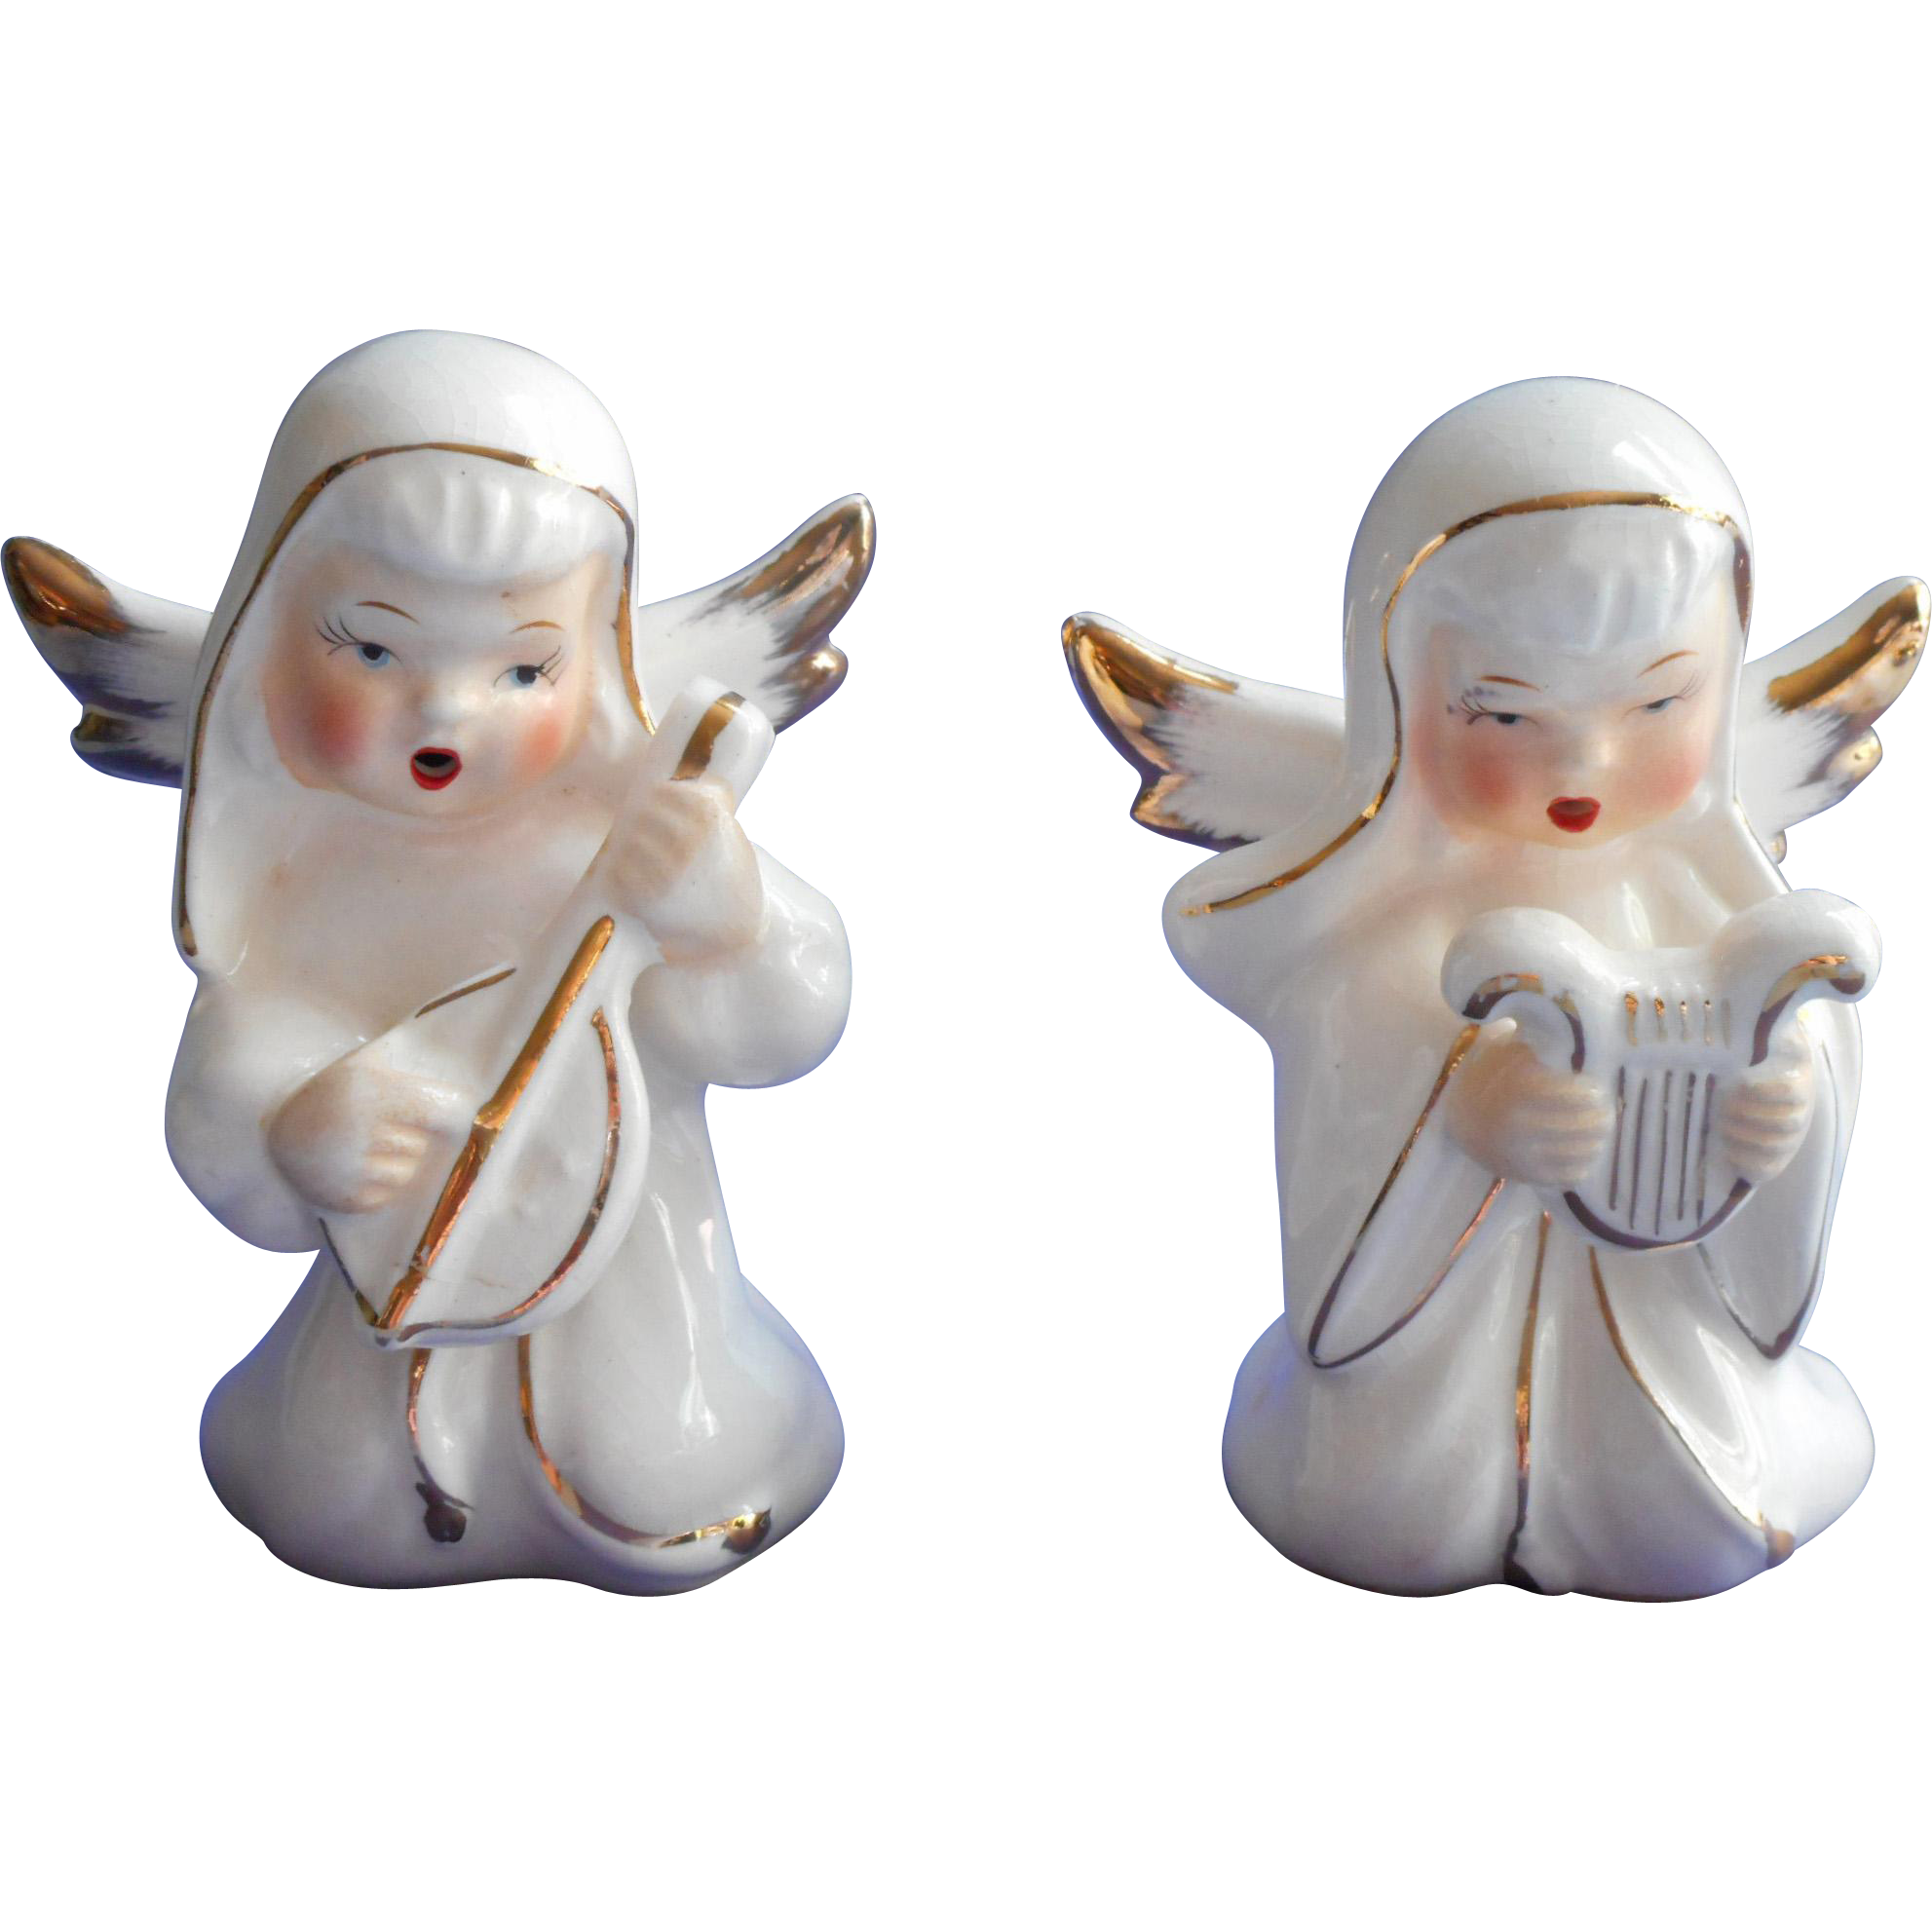 Vintage 1950s Japan Christmas Angel Figurines Pair Gold White Hand ...